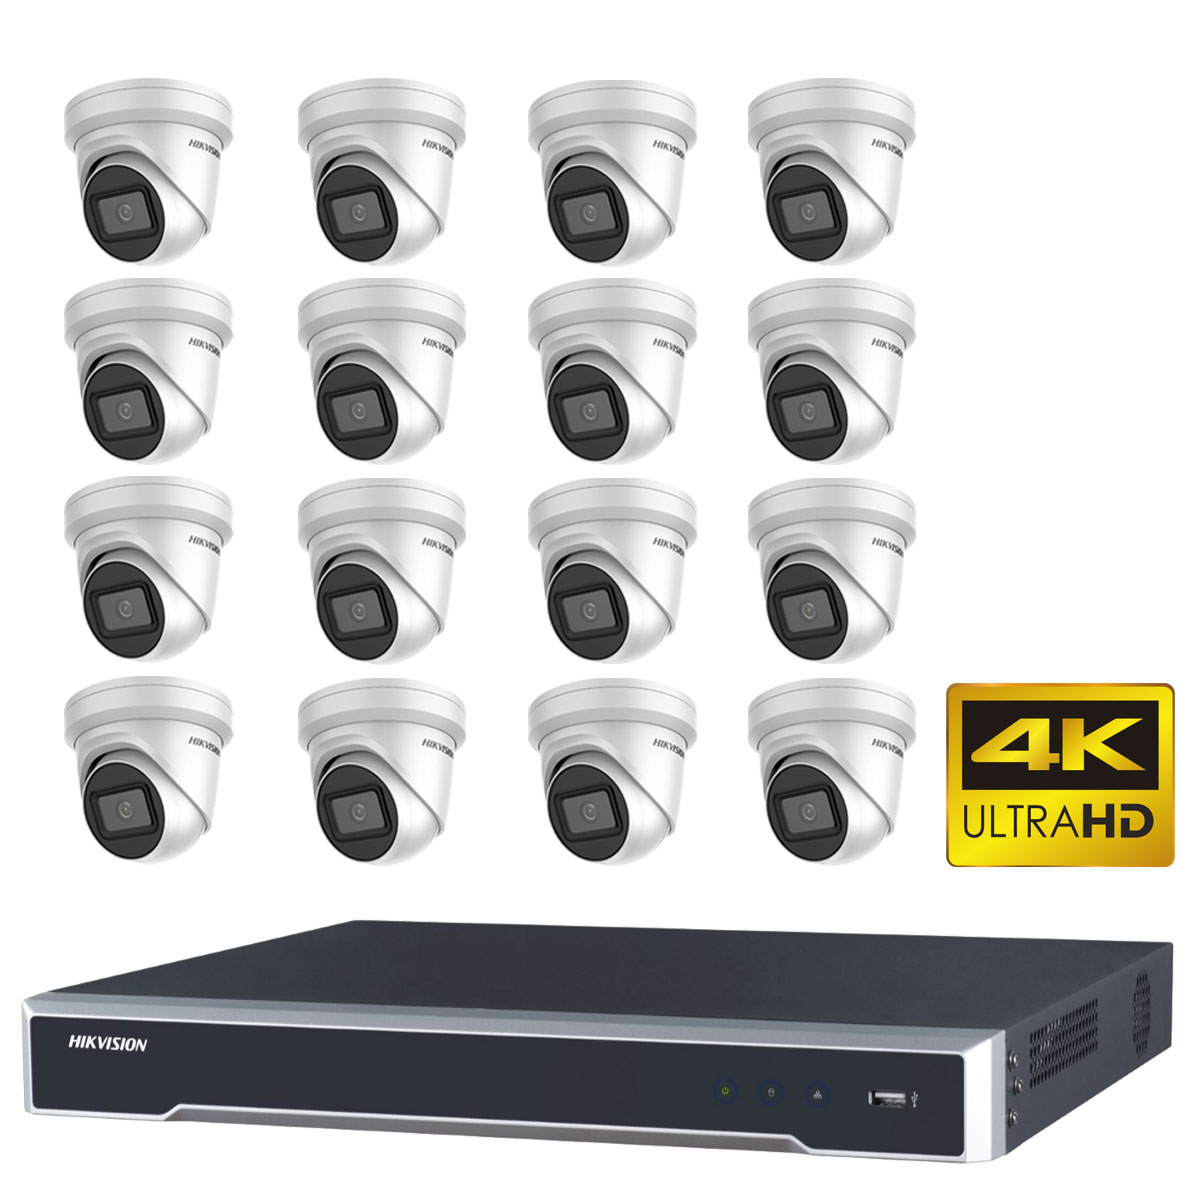 Hikvision 8MP 4K CCTV Kit with 16 IP Turret Camera with DS-7616NI-I2-16P NVR